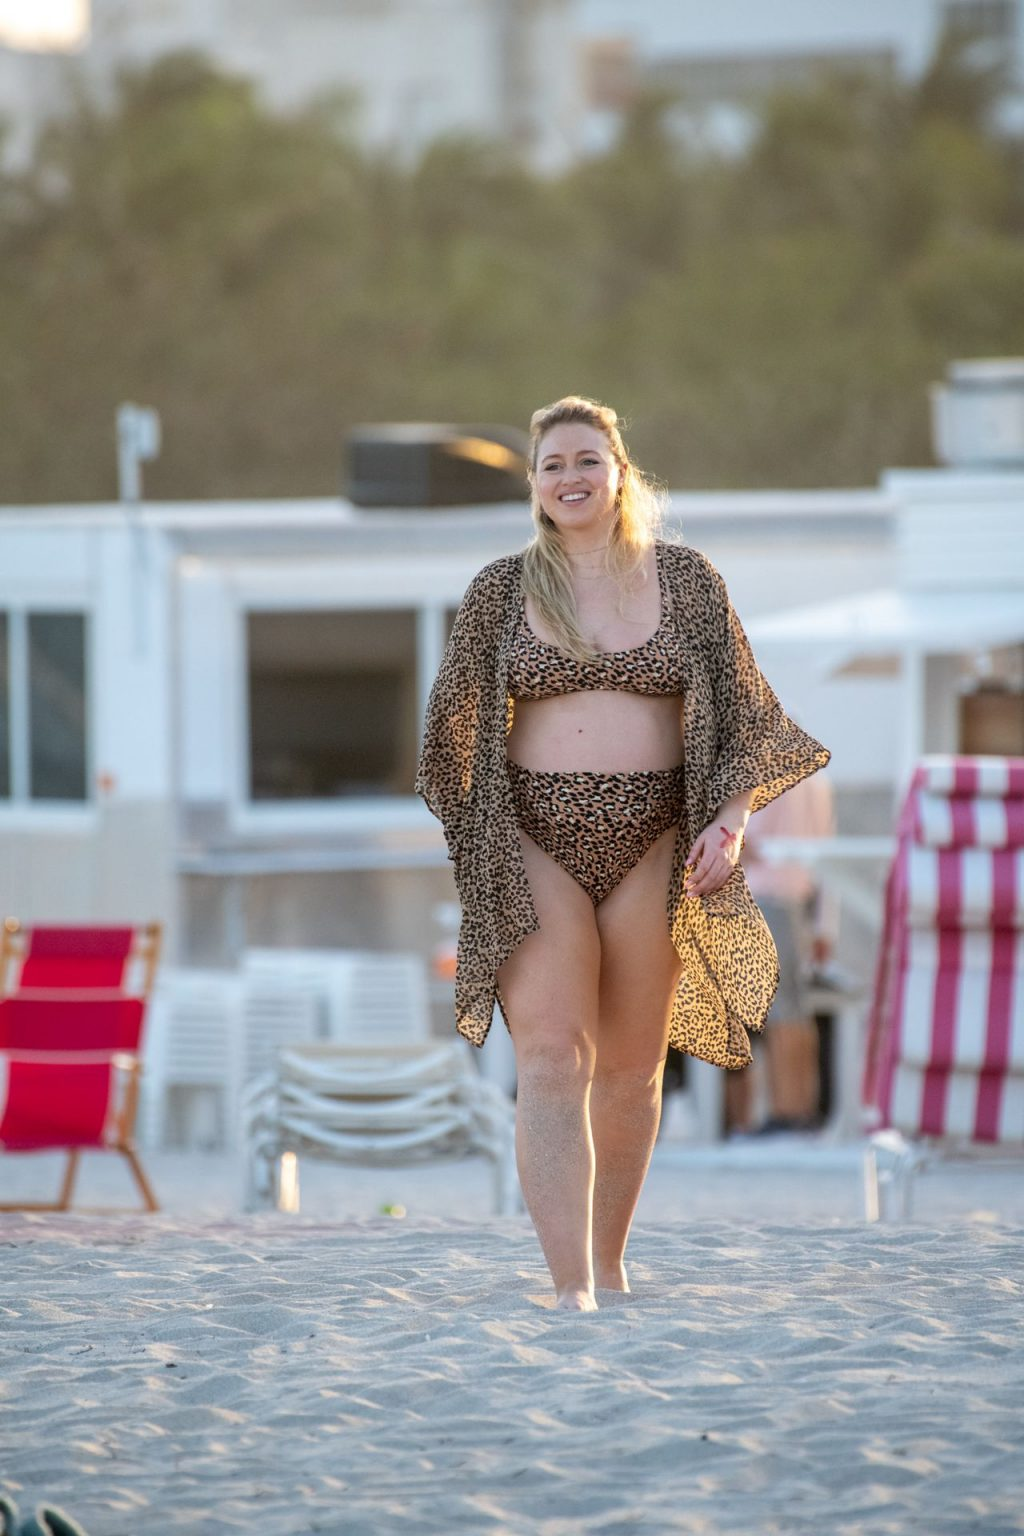 Iskra Lawrence Sexy The Fappening Blog 7 1024x1536 - Heavily Pregnant Model Iskra Lawrence Takes A Sunset Dip In Miami Beach (44 Photos)